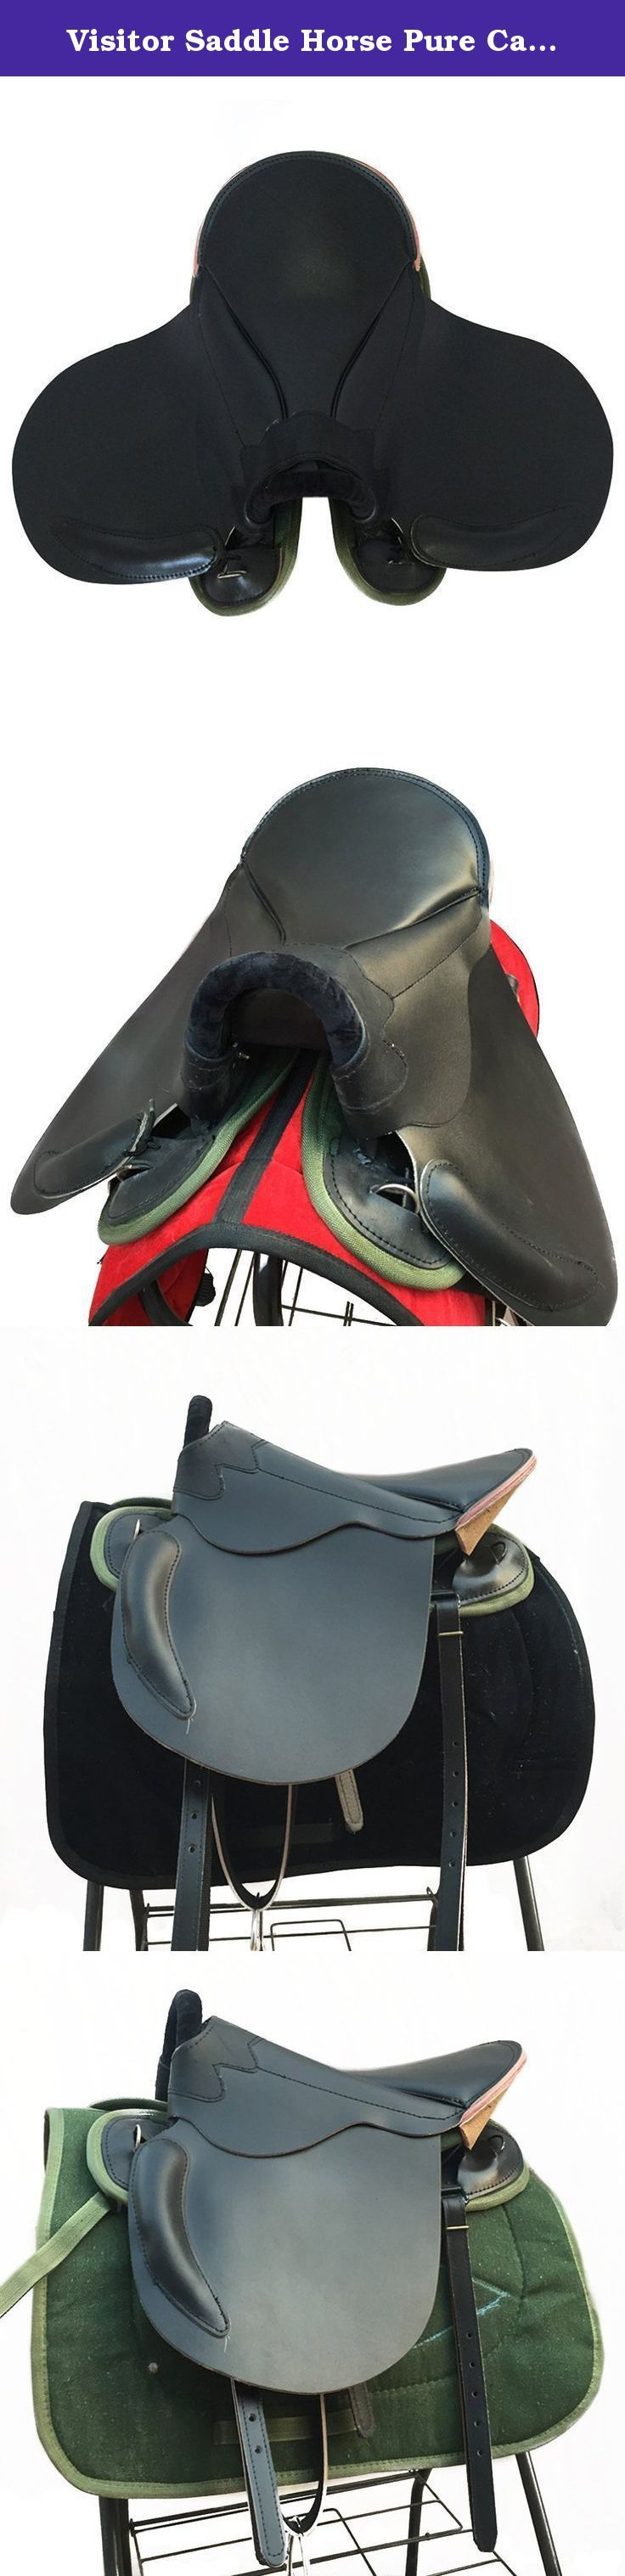 Visitor Saddle Horse Pure Cattle Leather Equestrian Supplies big. Features: High cost performance Manual made of cattle leather Improved from old army saddle Comfortable riding Keep away from wet environment and blazing sun Specifications: Color:black Size:big 46cm,small 38cm Suitable to:small horses of normal stature with 1-1.2m shoulder big horses of normal stature with over 1.2m shoulder Weight:small 7kg,big 8kg .